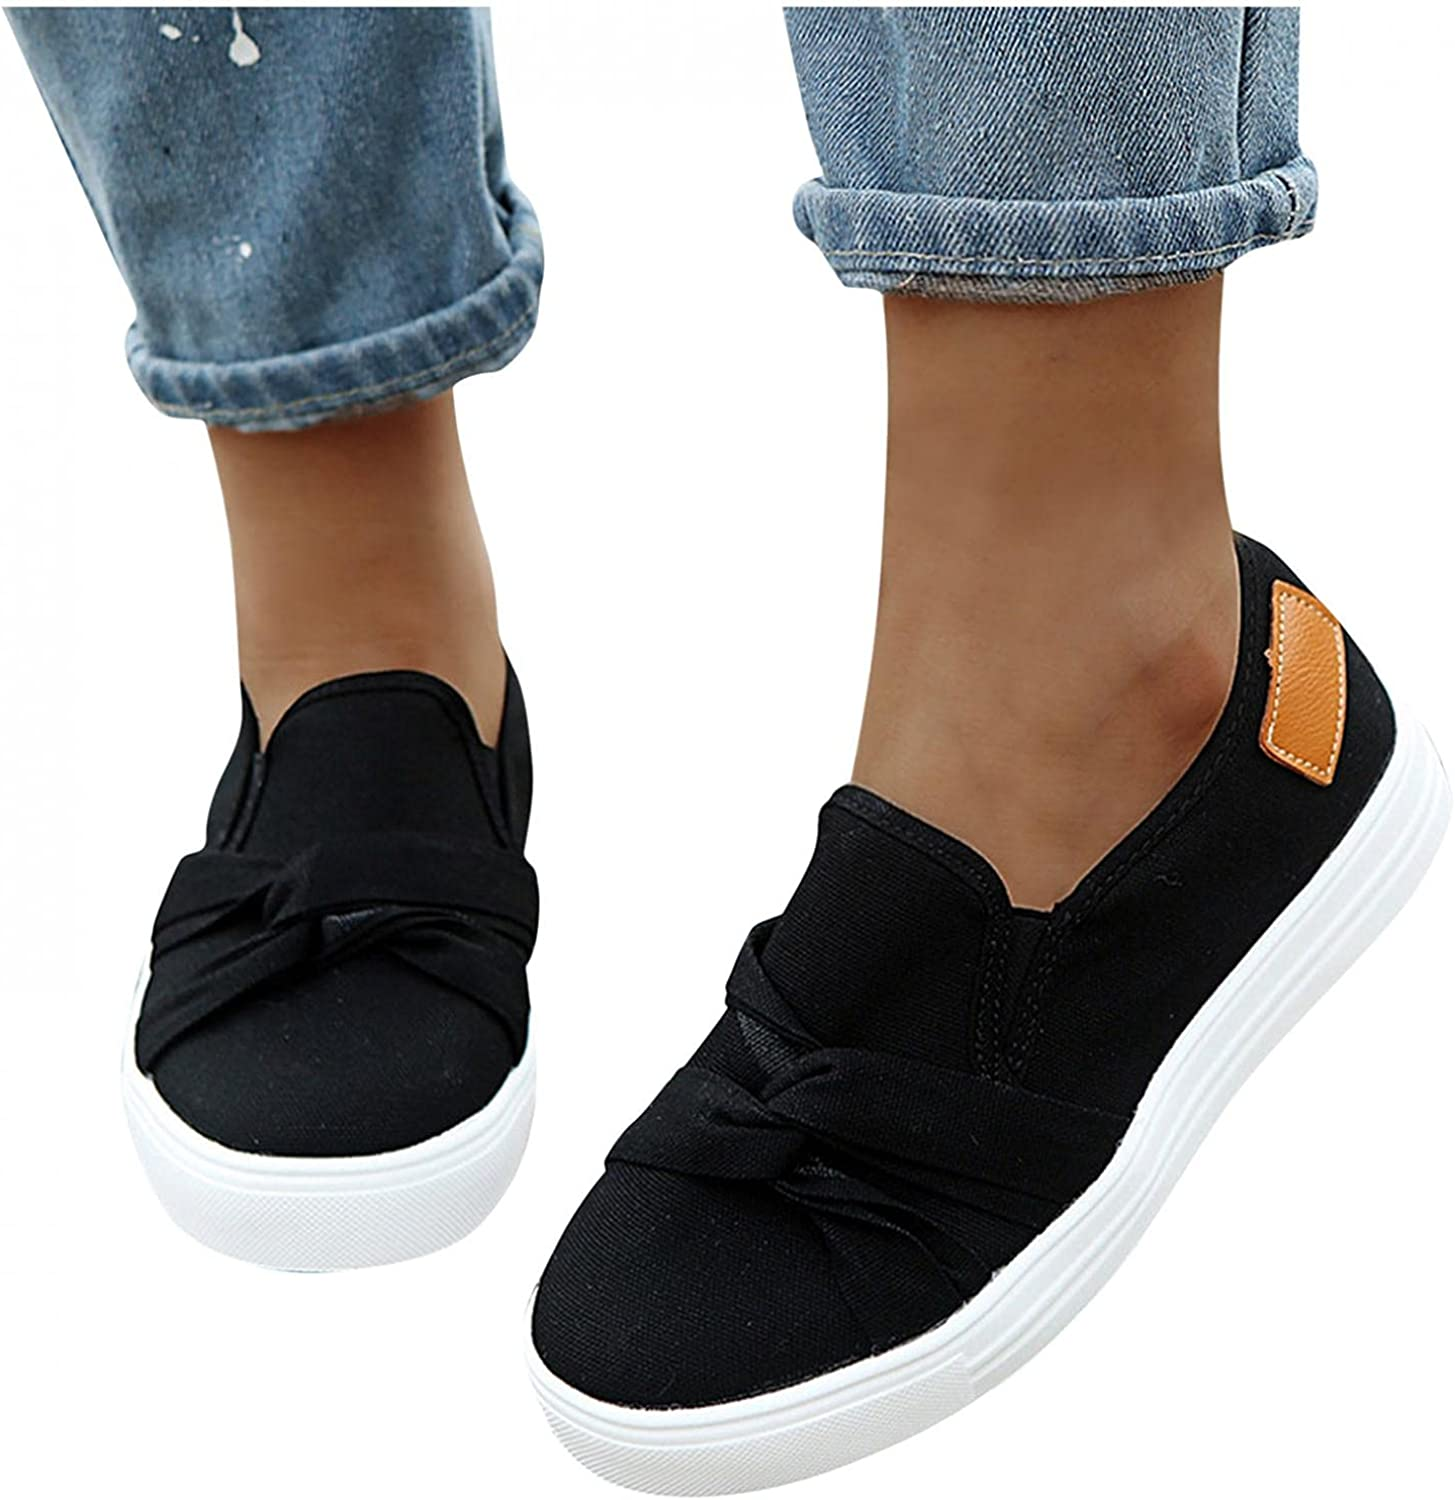 UOCUFY Walking Shoes for Women Casual Loafers Travel Comfy Shoes Slip On Round Toe Lightweight Shoes Summer Outdoor Sneakers